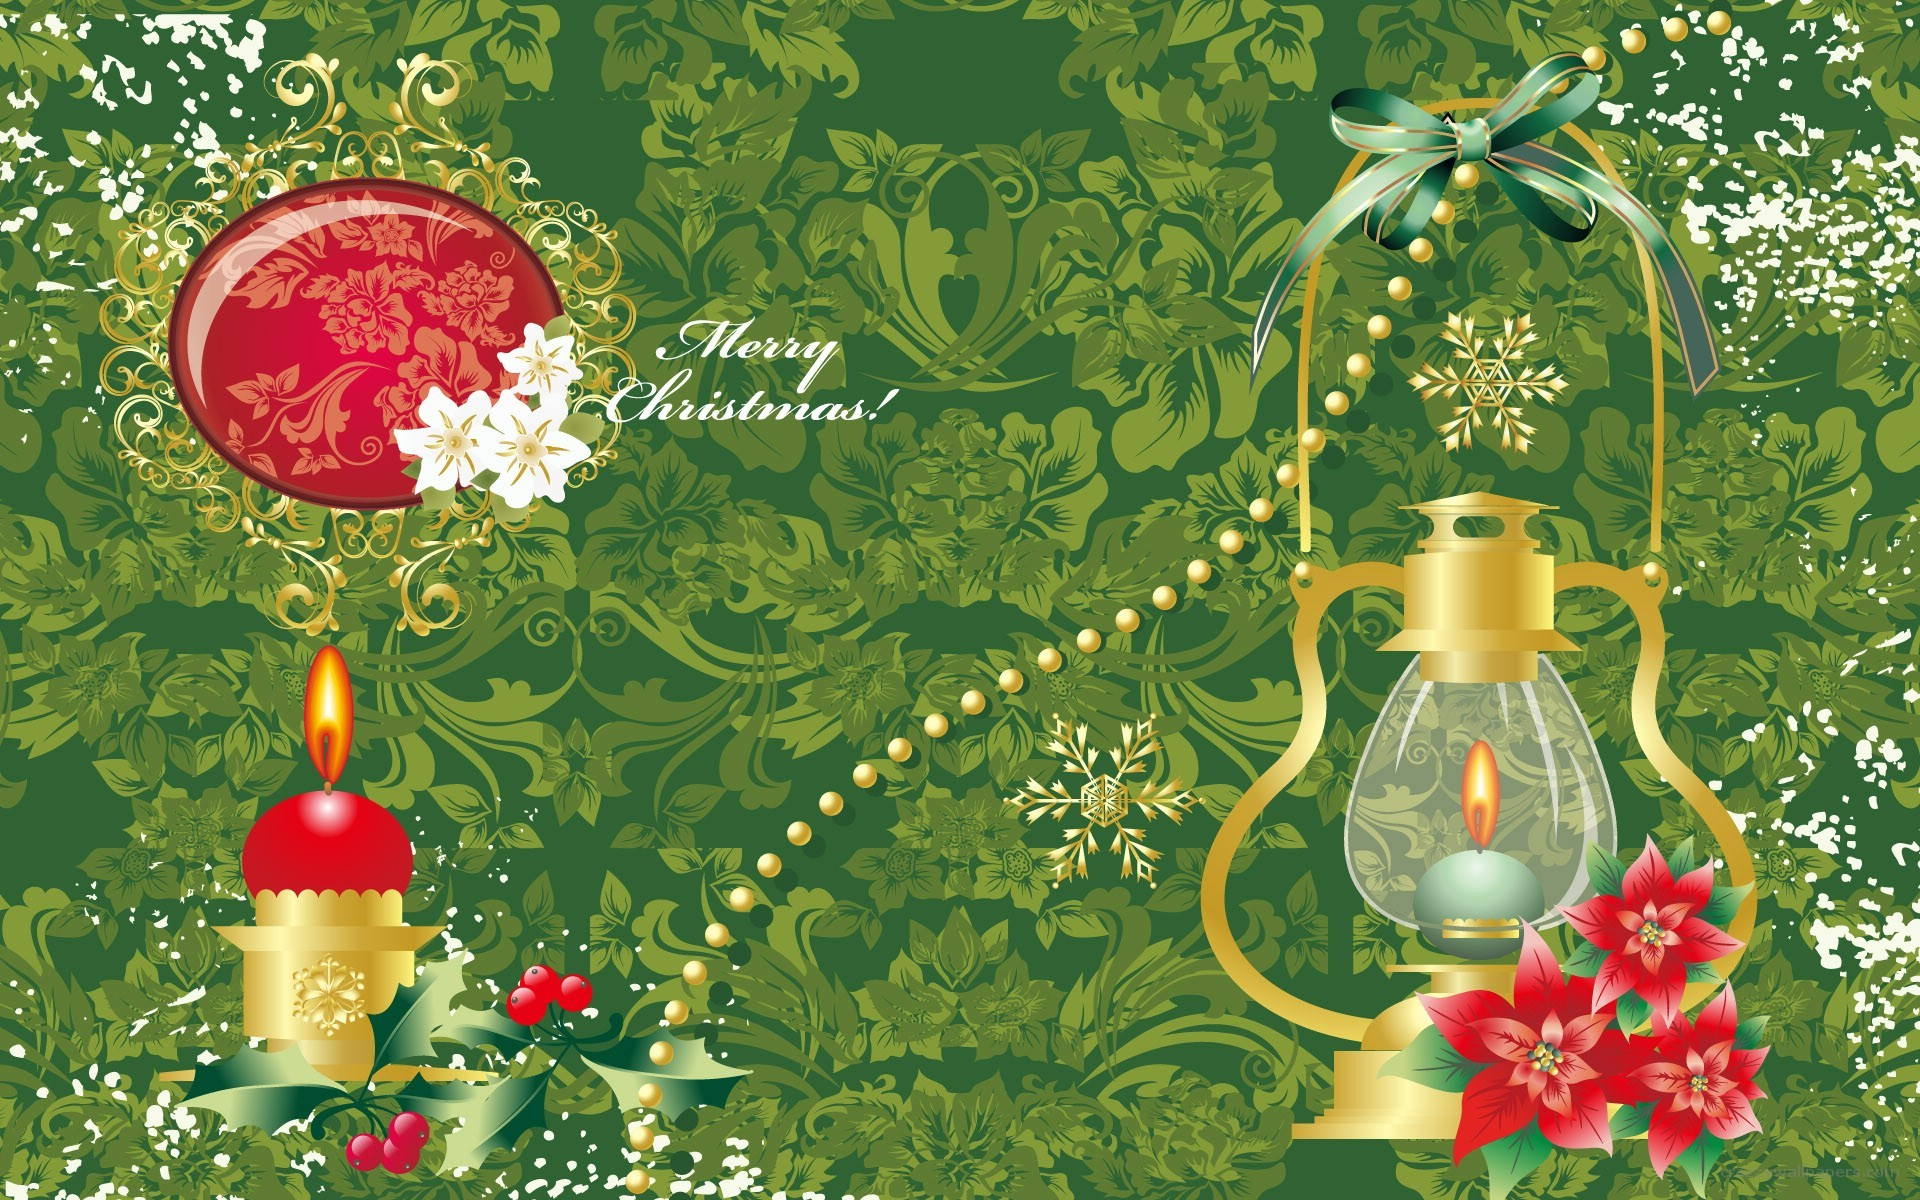 35 Christmas Wallpapers for Decorating your Desktop   Webdesign Core